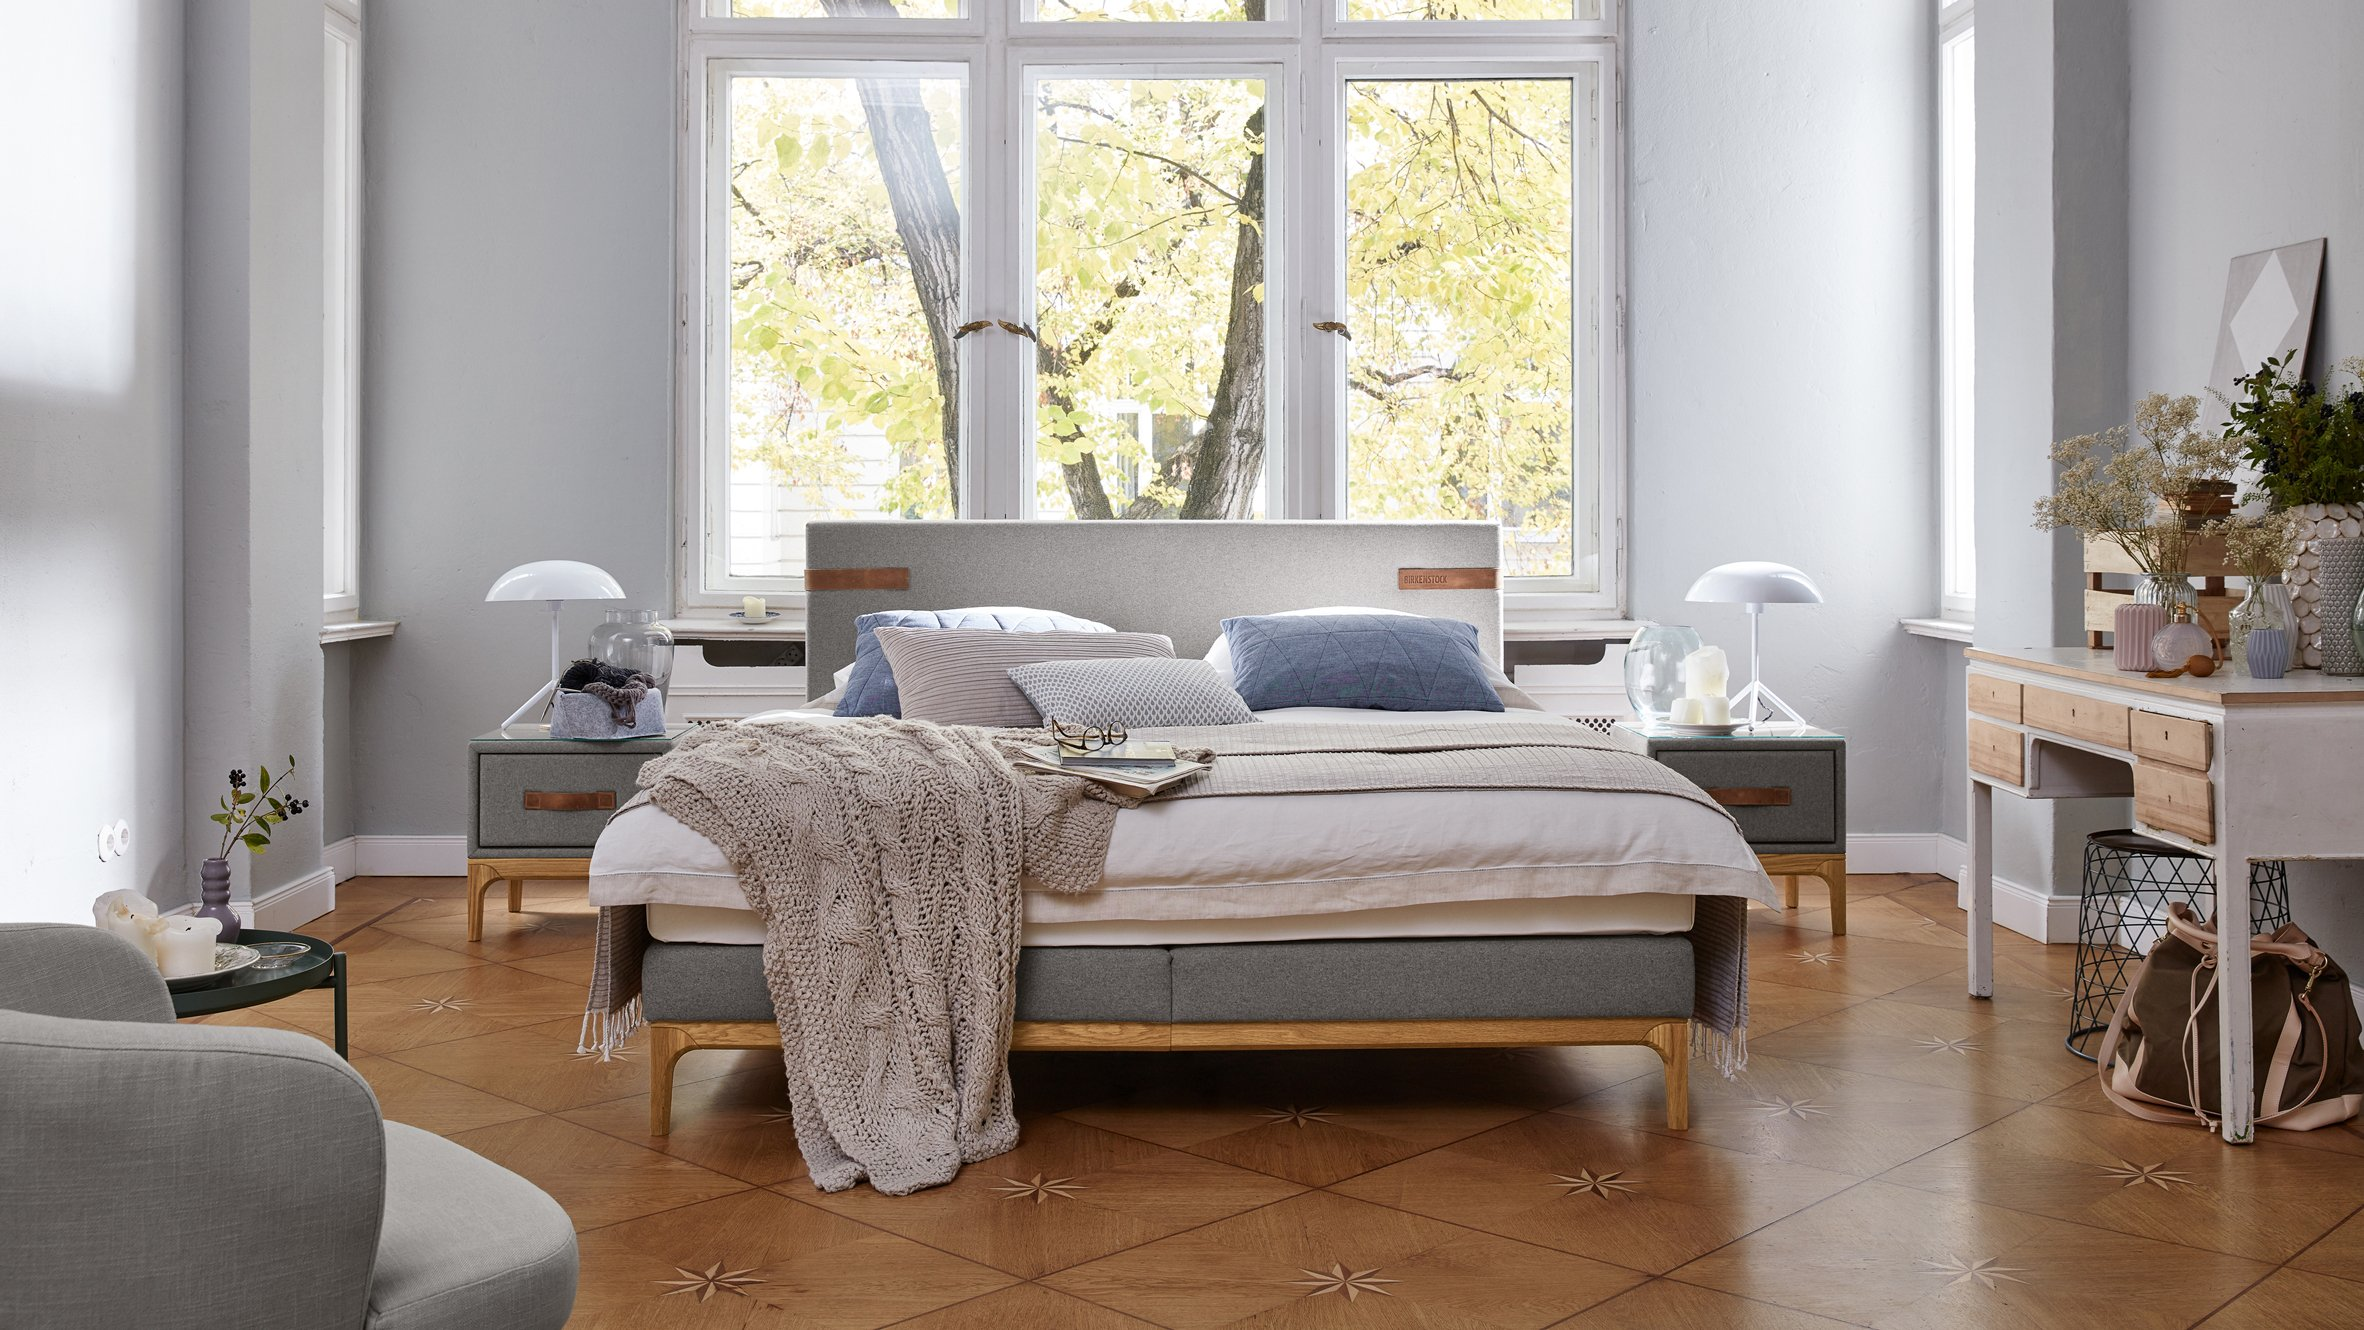 Birkenstock Launches Line Of Beds As Next Step In Comfort Design